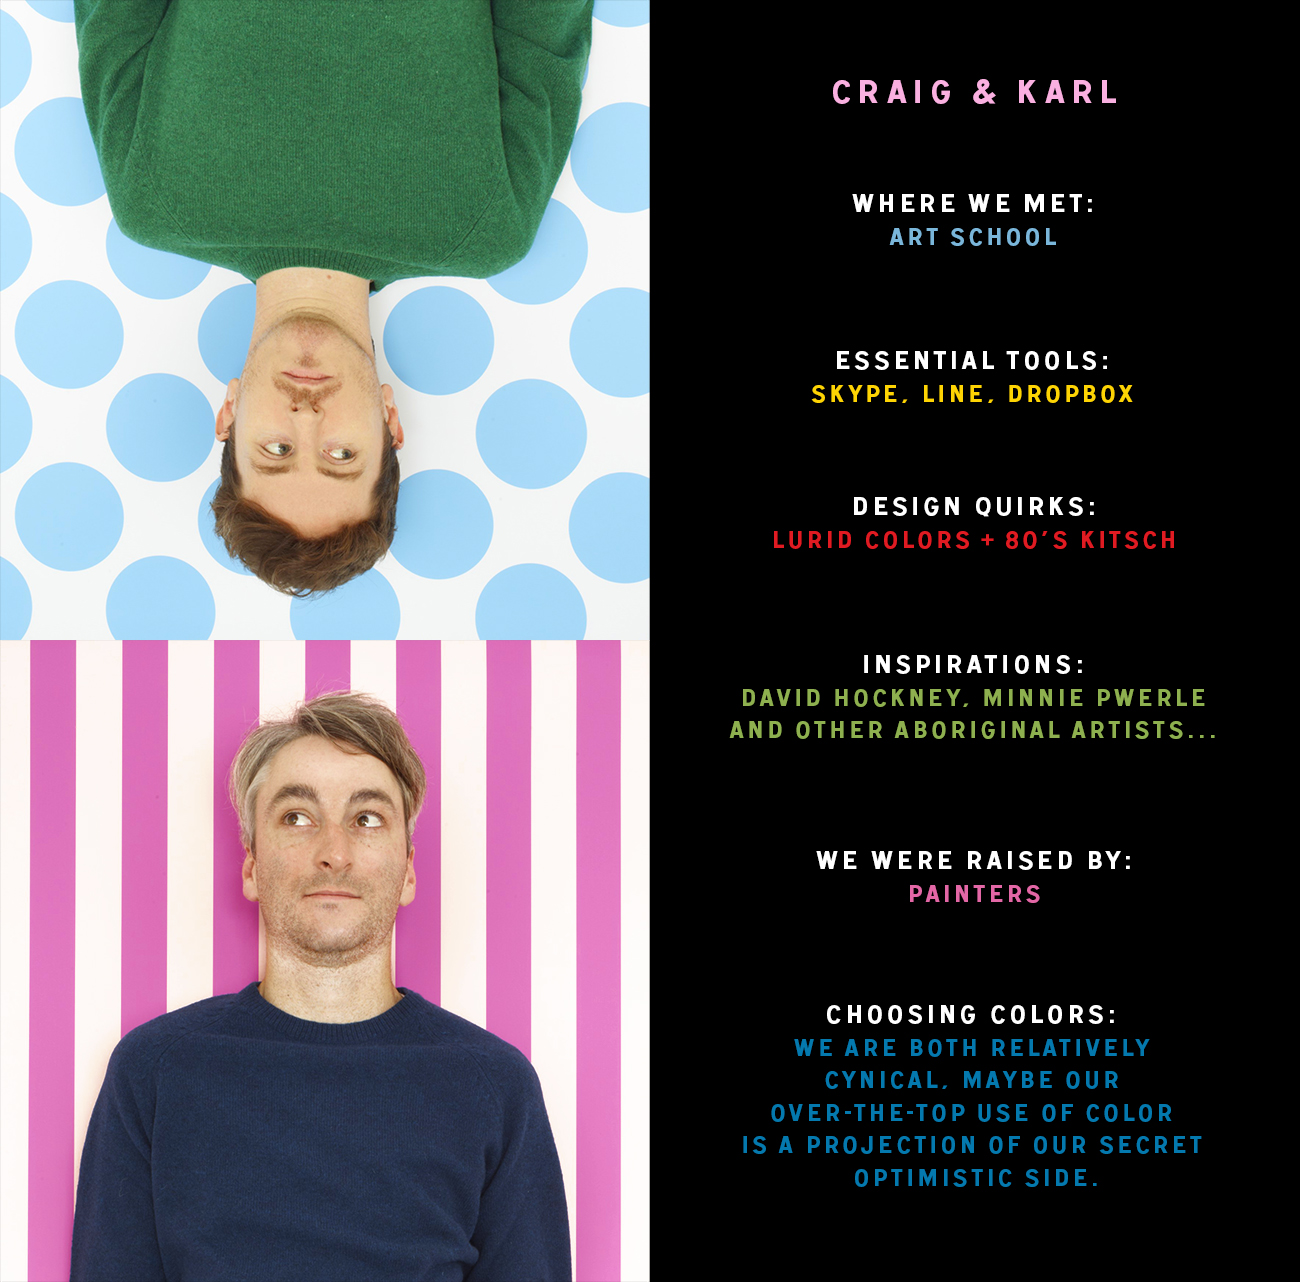 Getting to know Craig & Karl